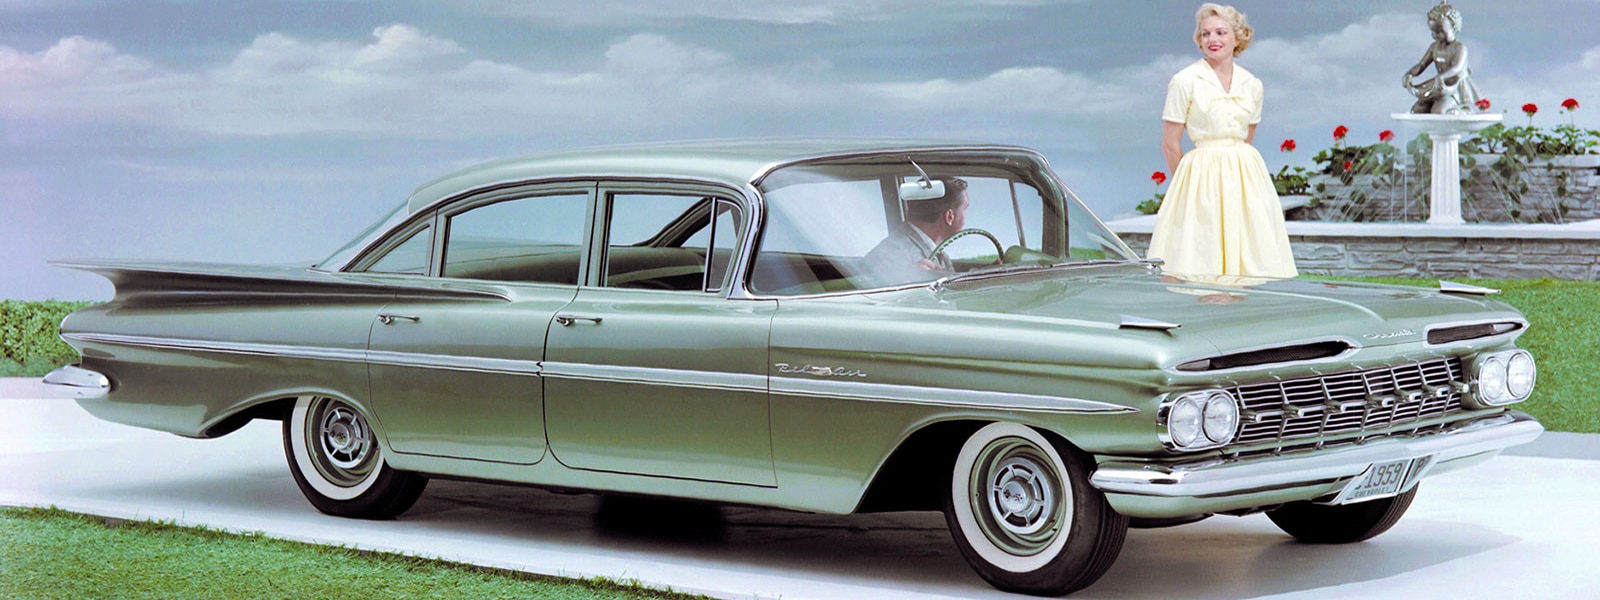 1959 Chevrolet Bel Air 4-Door Sedan